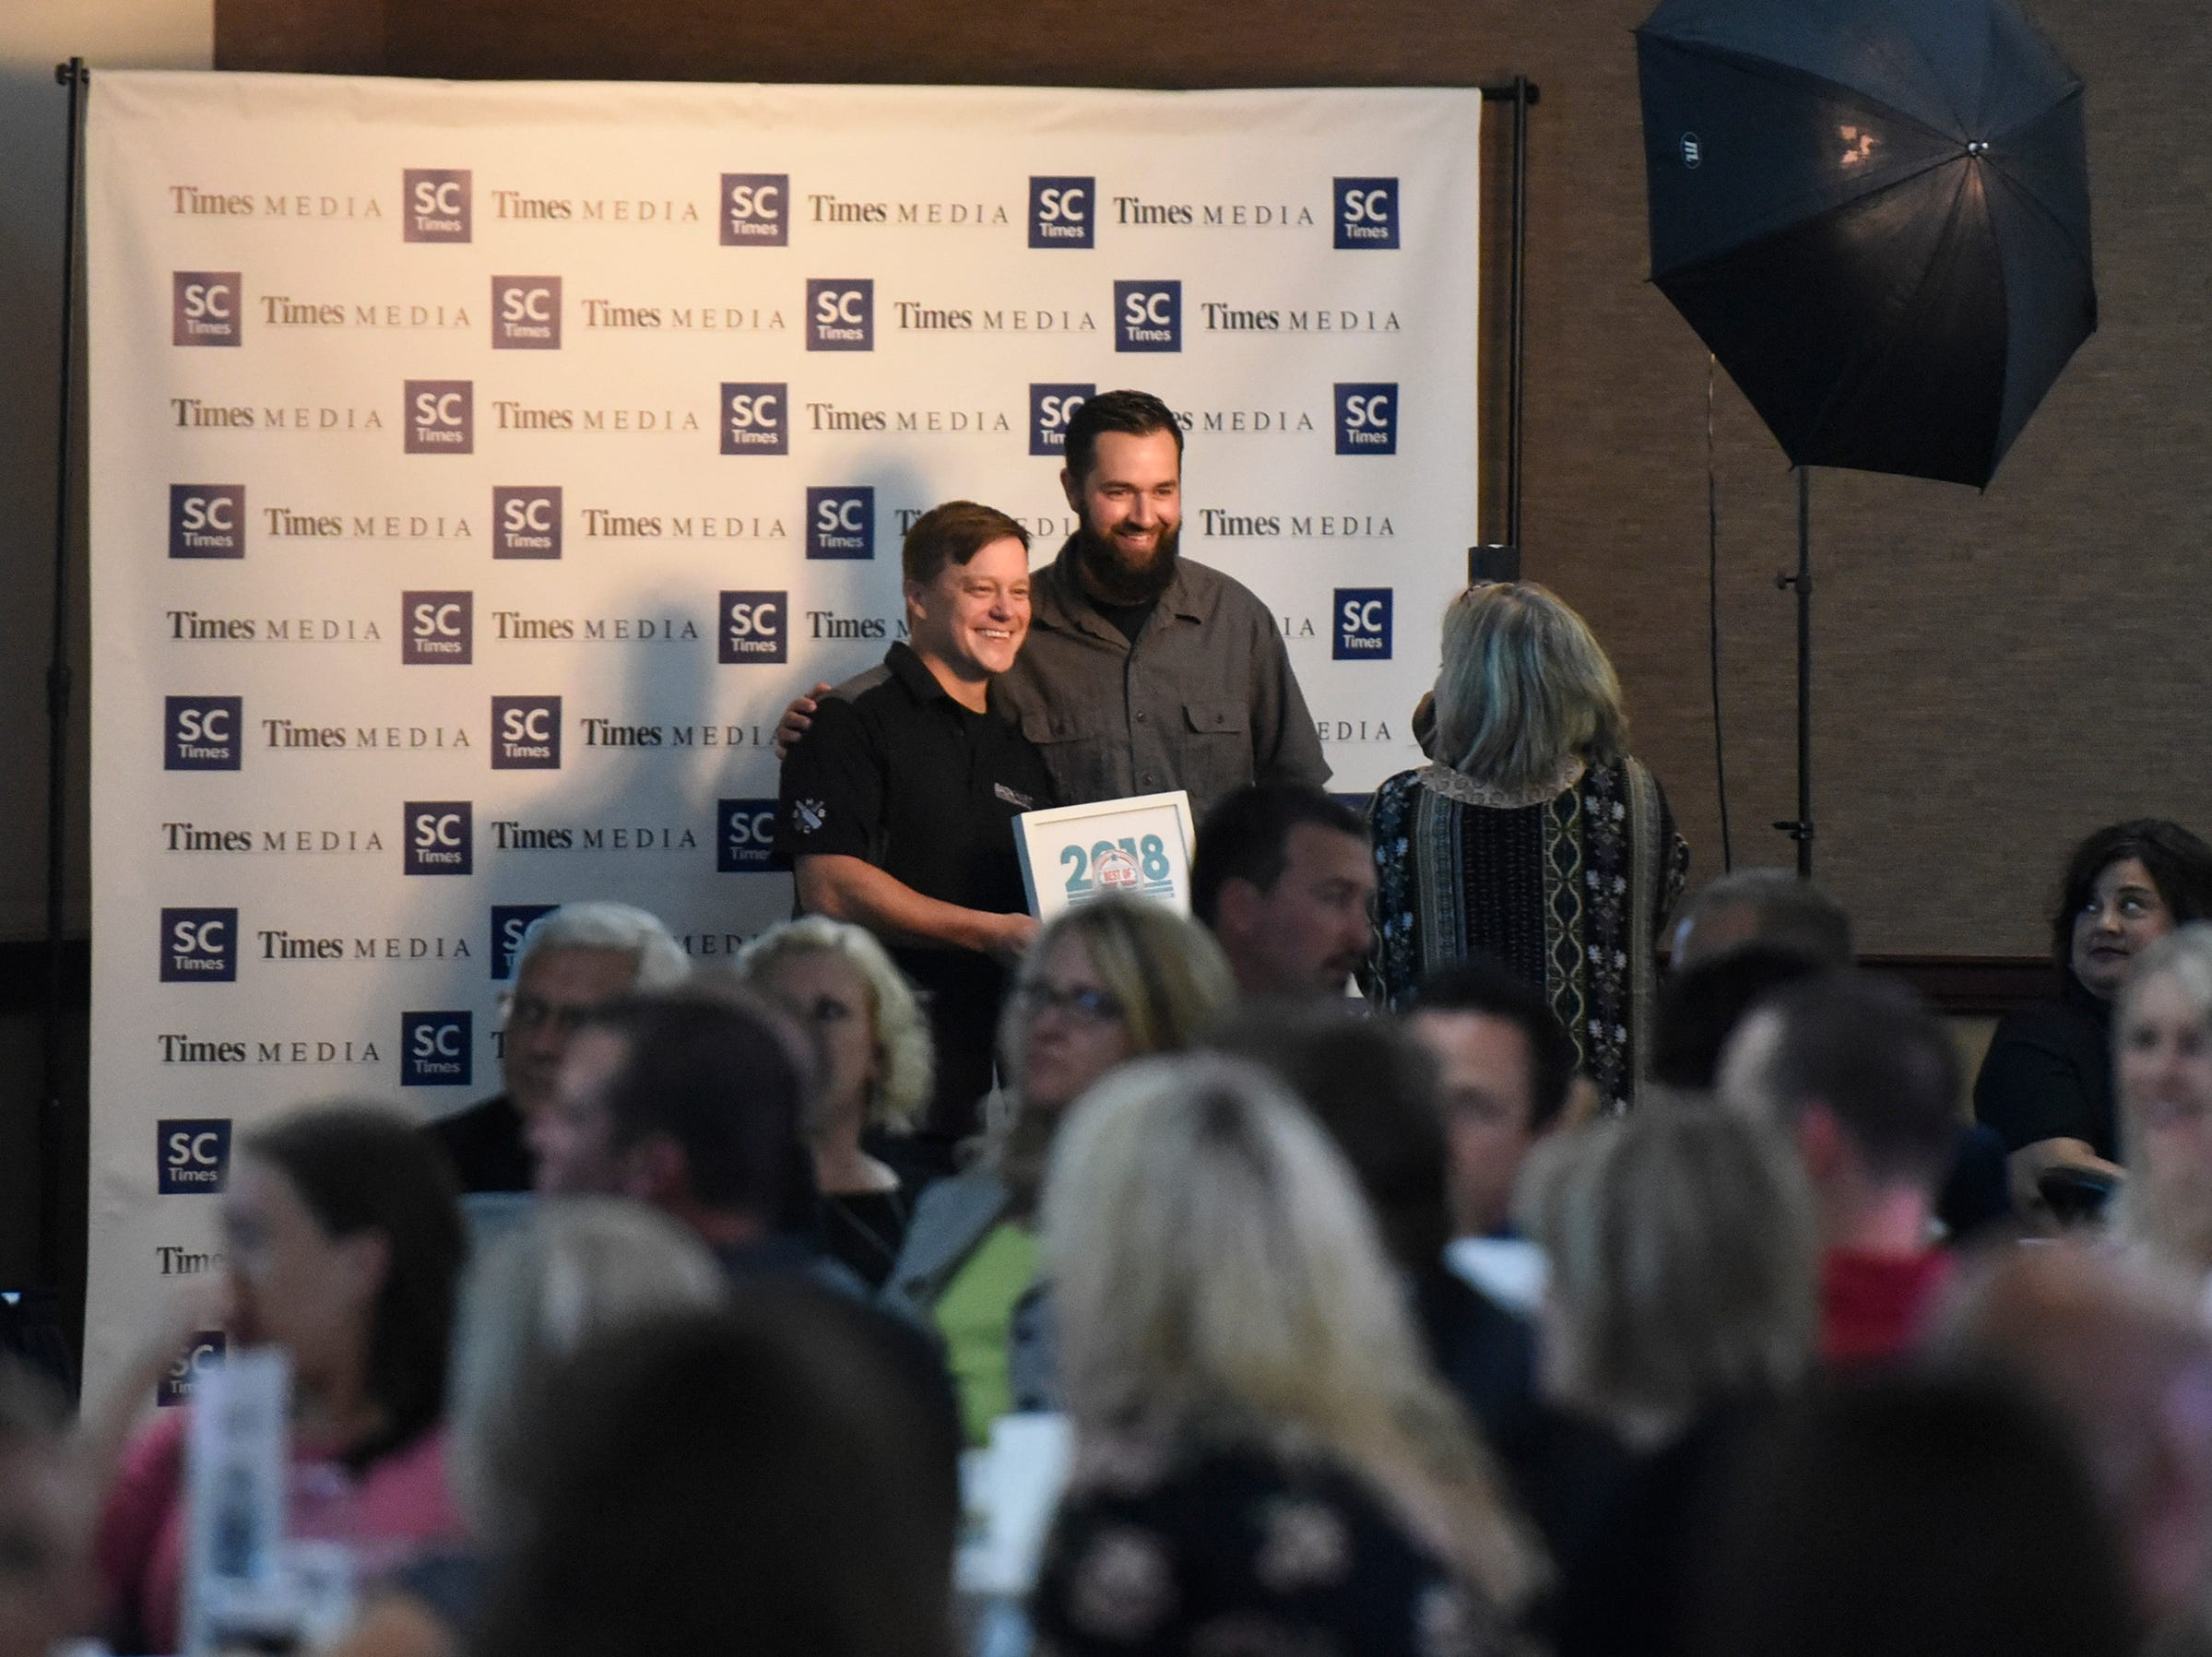 Eric Geier and Aaron Rieland accept an award for Bad Habit Brewery during the Best of Central Minnesota awards ceremony Thursday, Sept. 13, in St. Joseph.